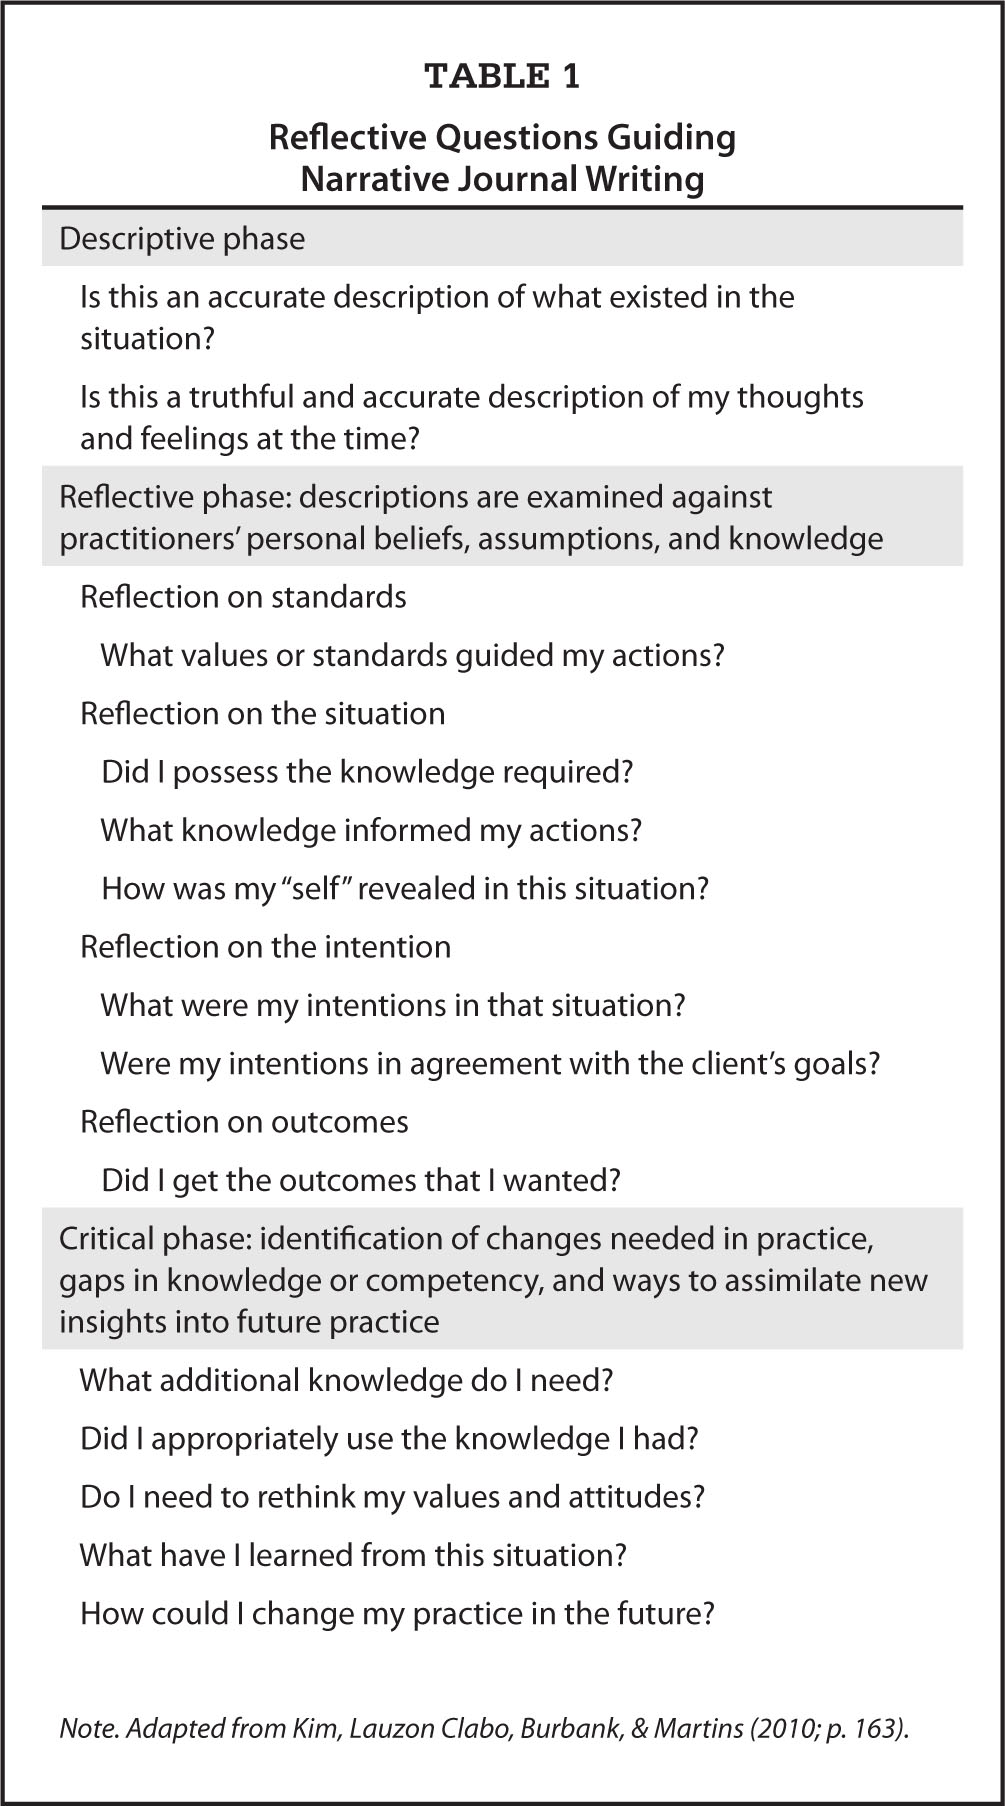 my reflection essay Personal reflective essay ideas we want to share some reflective essay examples ideas you can use for your personal writing: how i met my best friend, and why we became friends.